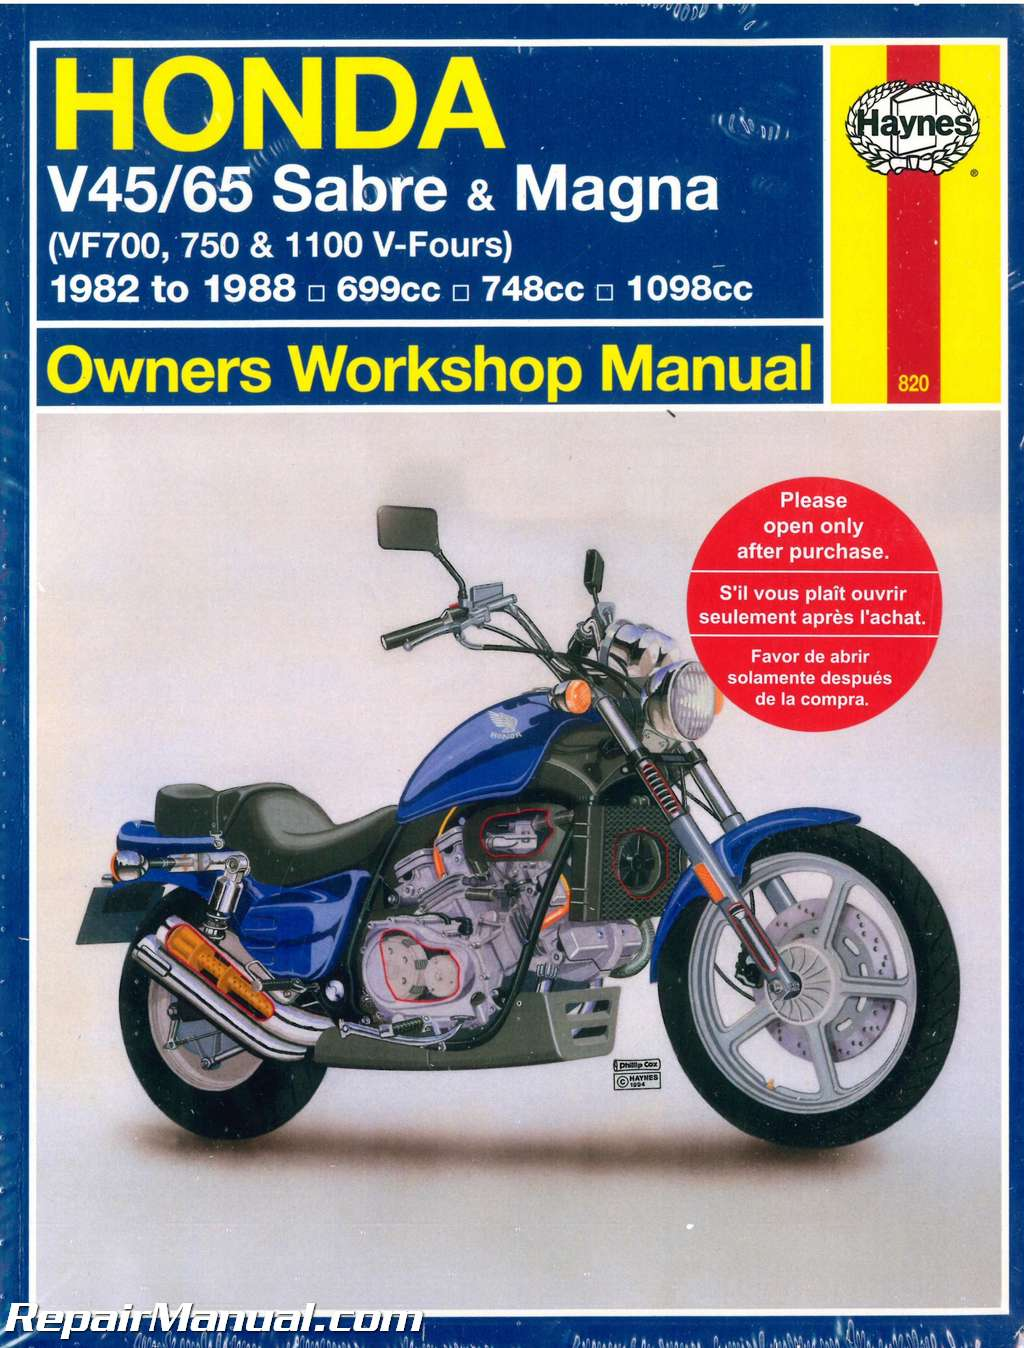 Honda V45 V65 VF700 750 1100 Sabre Magna V-Fours 1982-1988 Haynes  Motorcycle Repair Manual